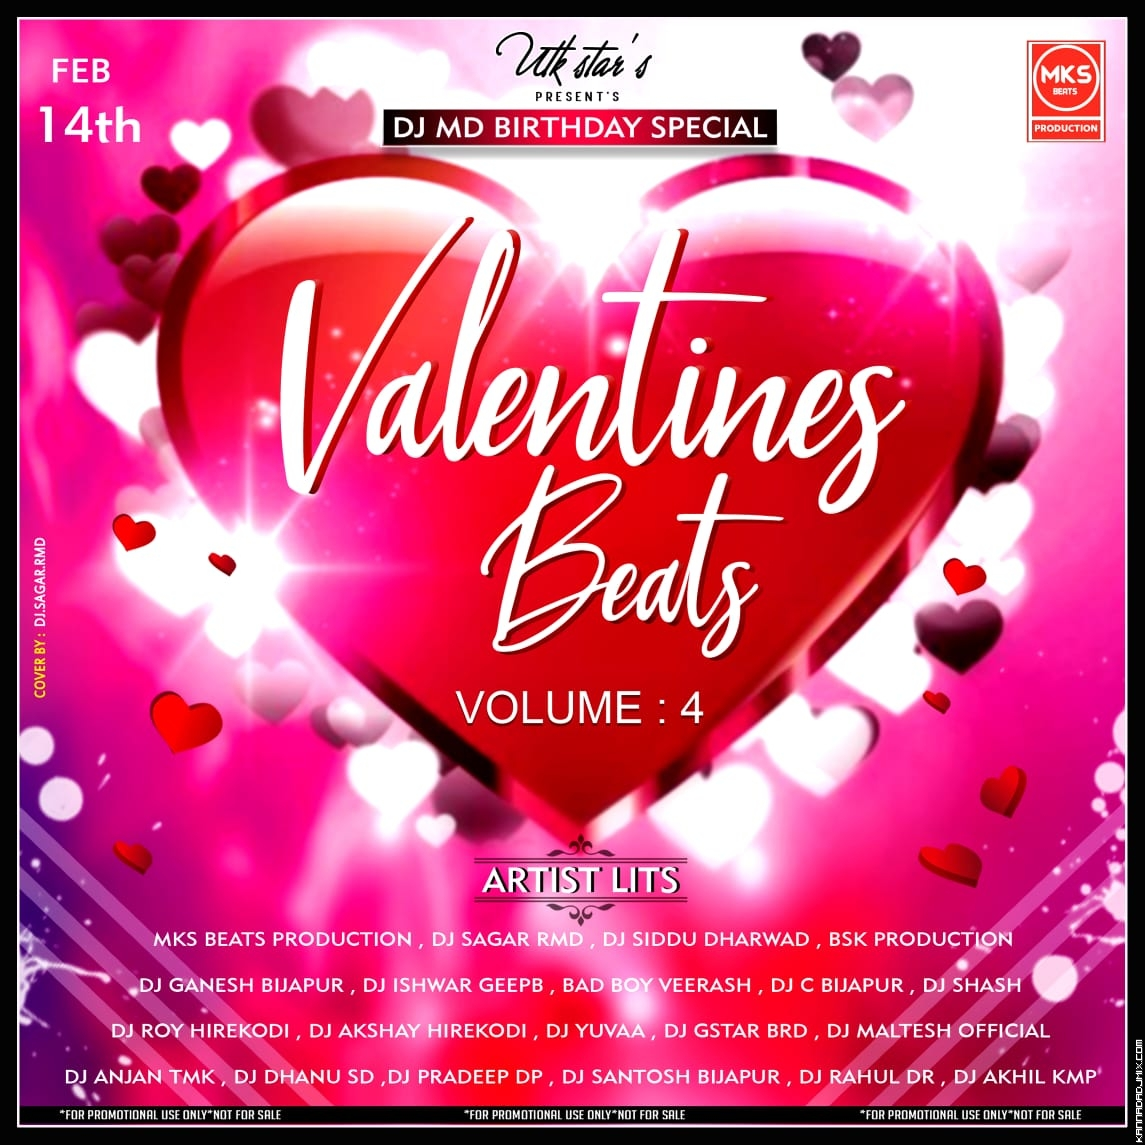 19-SUMMANE YAKE BANDE [CHILLOUT] -MKS BEATS PRODUCTION.mp3